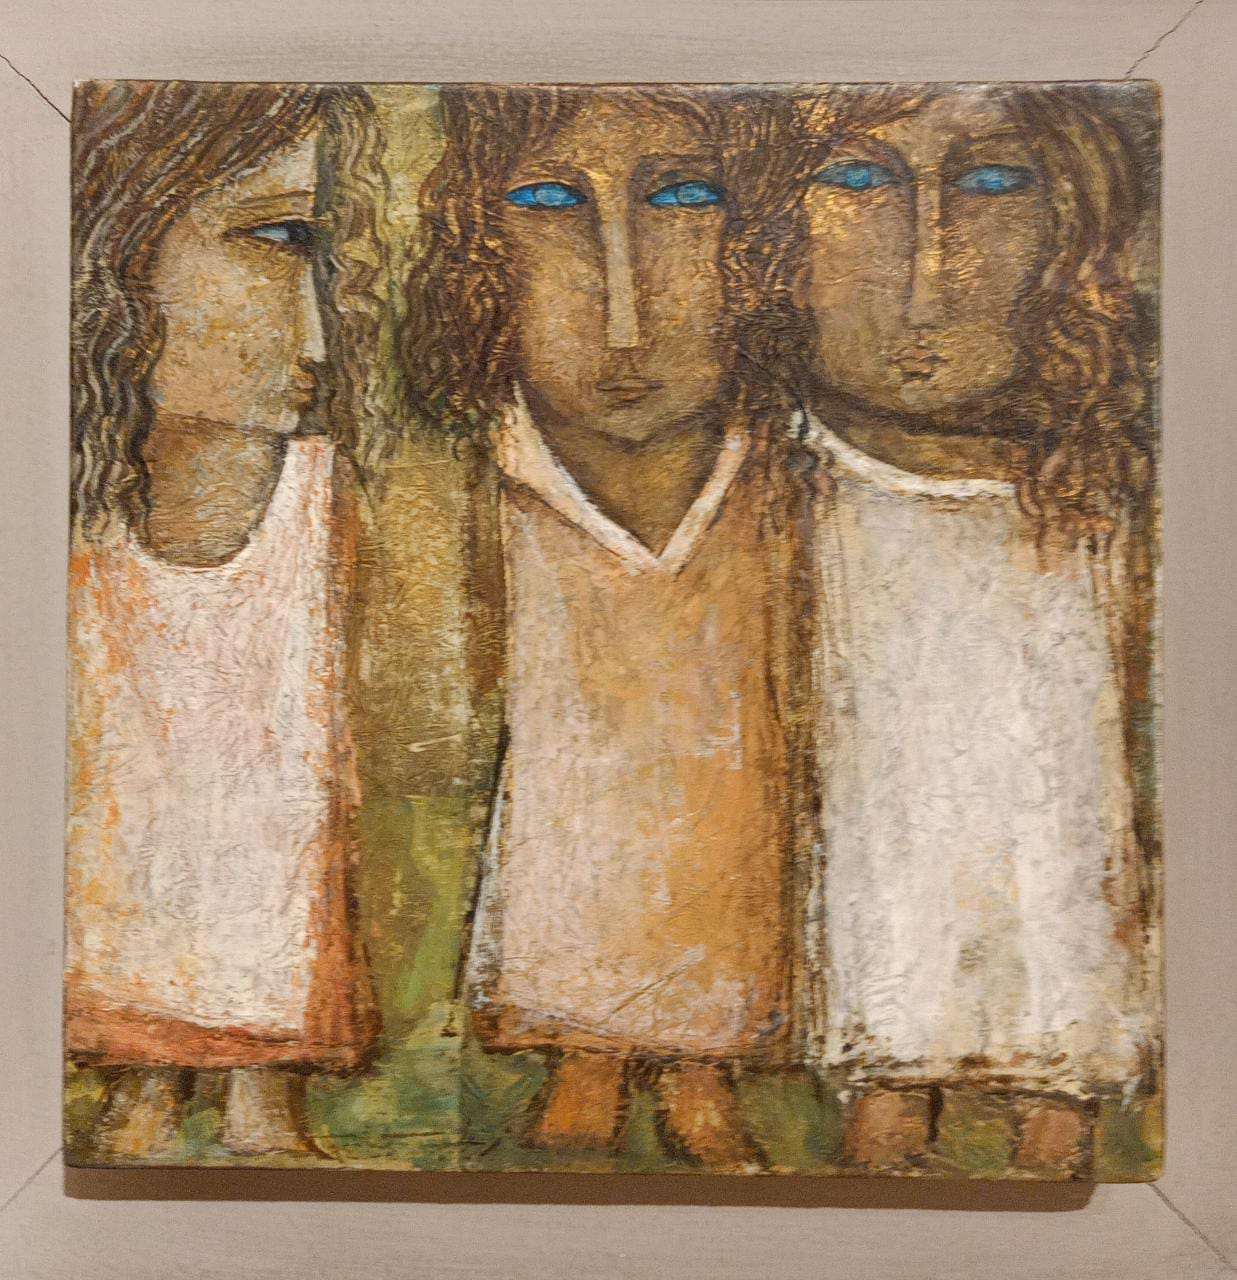 Zeinab Al Saginy (1930) 20 x 20 cm Oil on wood Signed and dated 1994 lower left